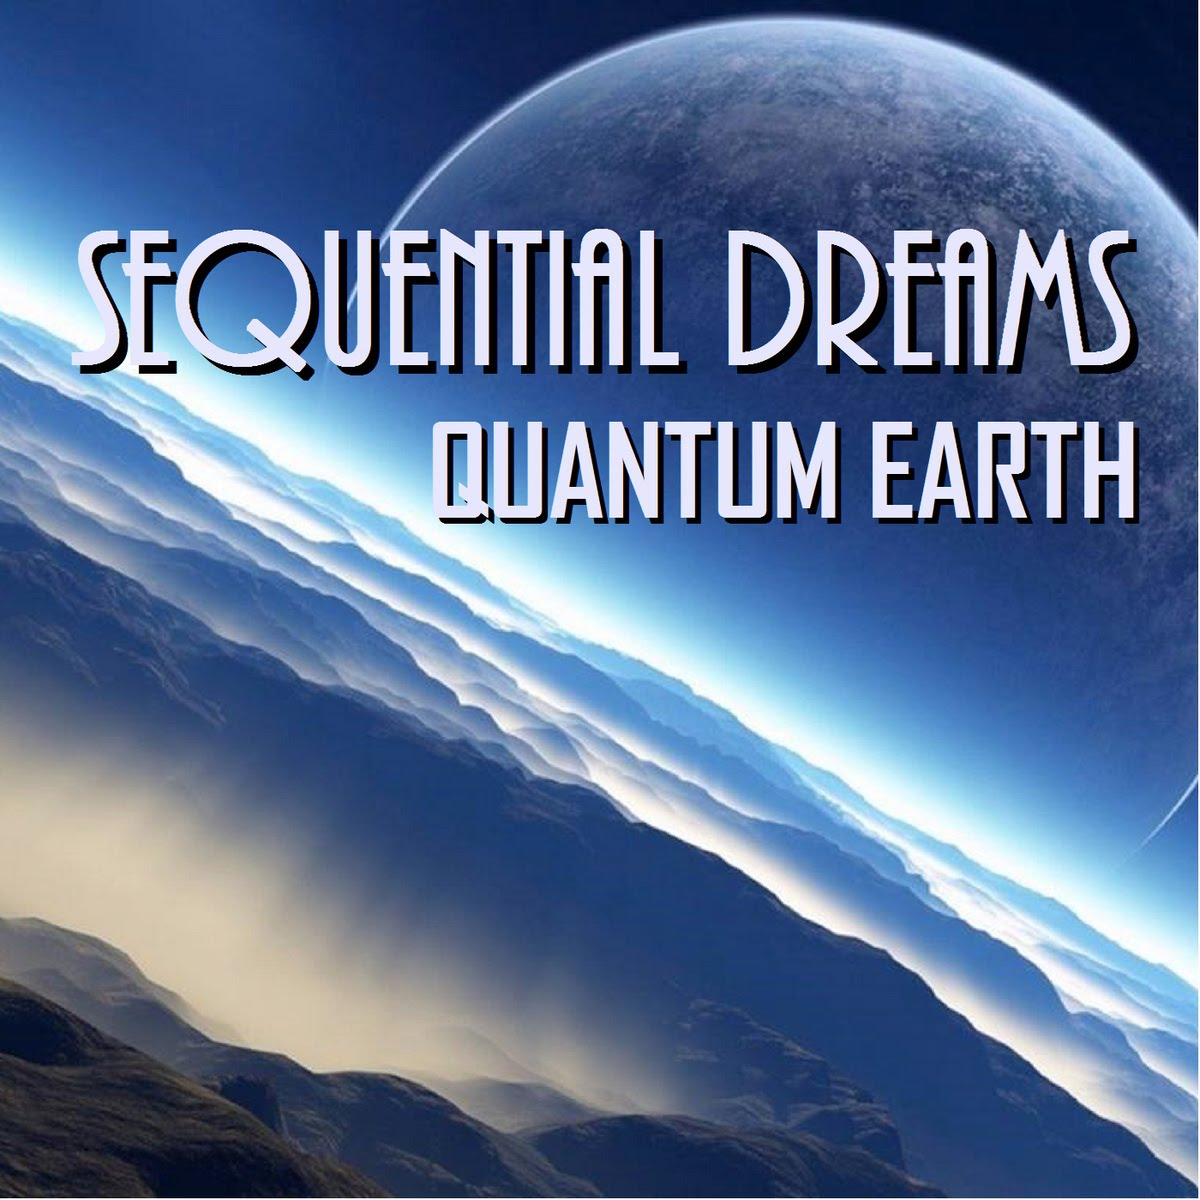 http://www.cdbaby.com/cd/sequentialdreams4